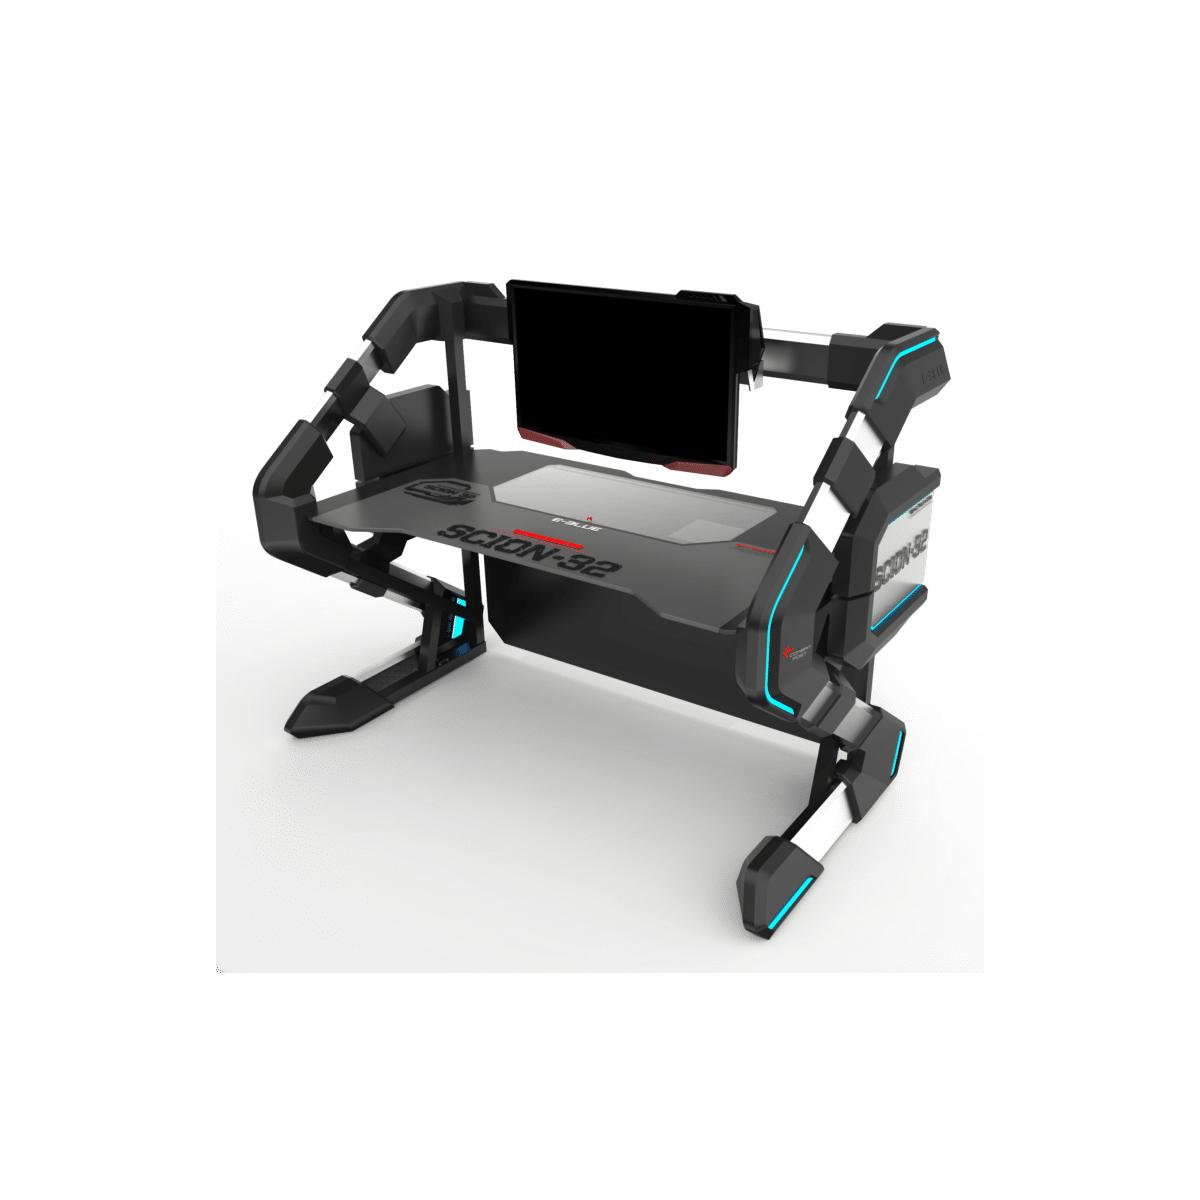 E-Blue 2 in 1 RGB Gaming Desk with Gaming Fence - Black